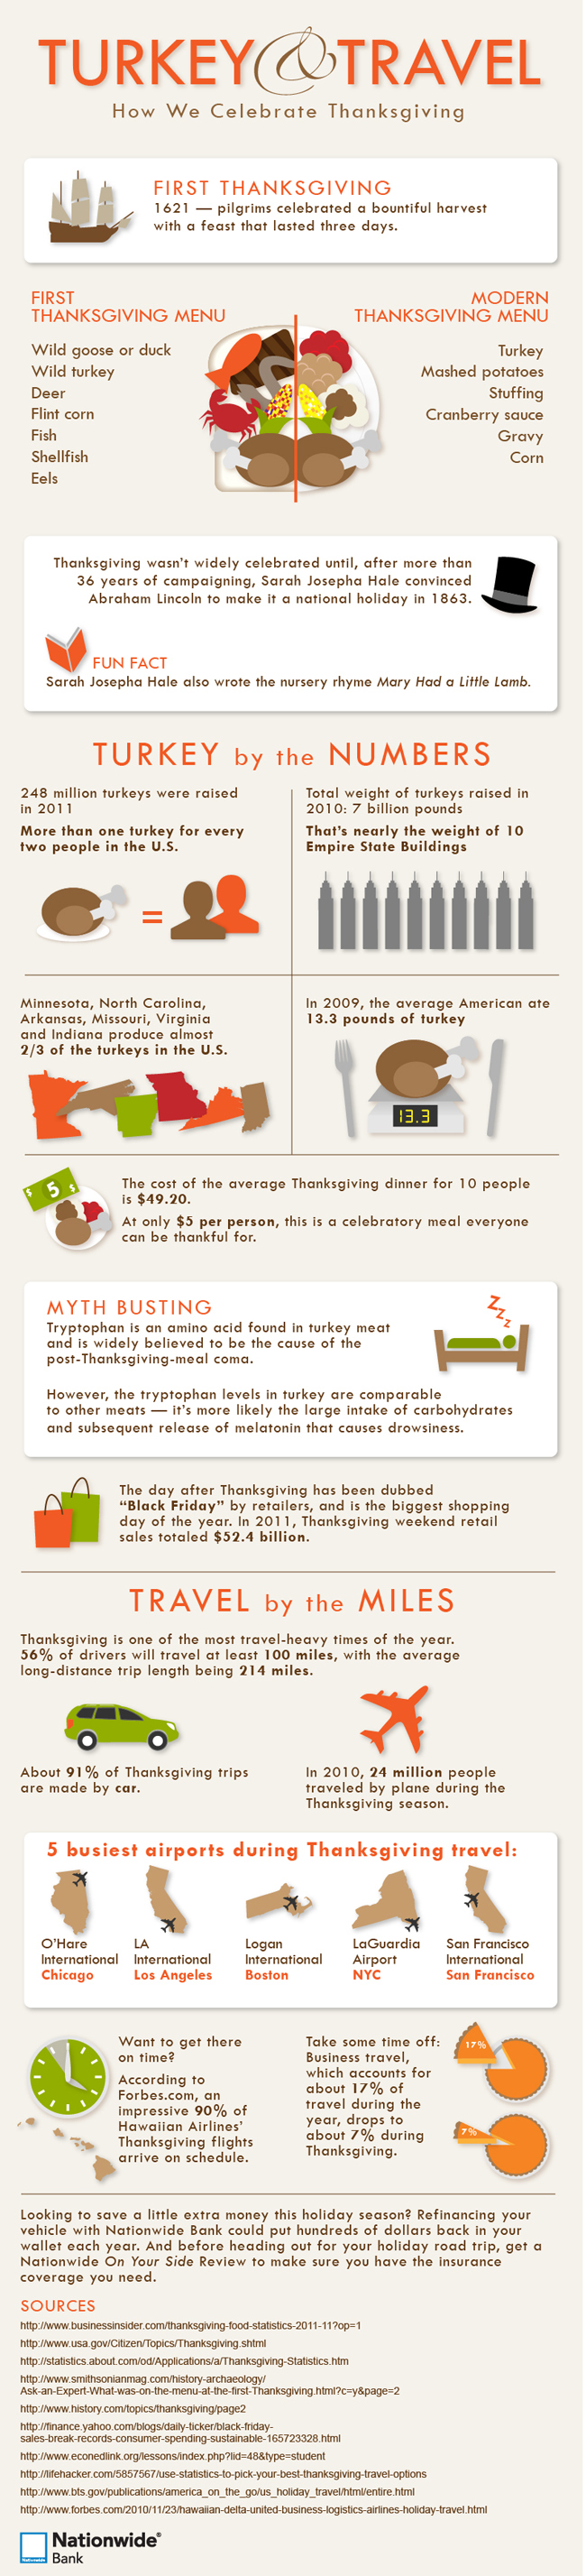 Learn interesting Thanksgiving facts and travel statistics in this Thanksgiving infographic.